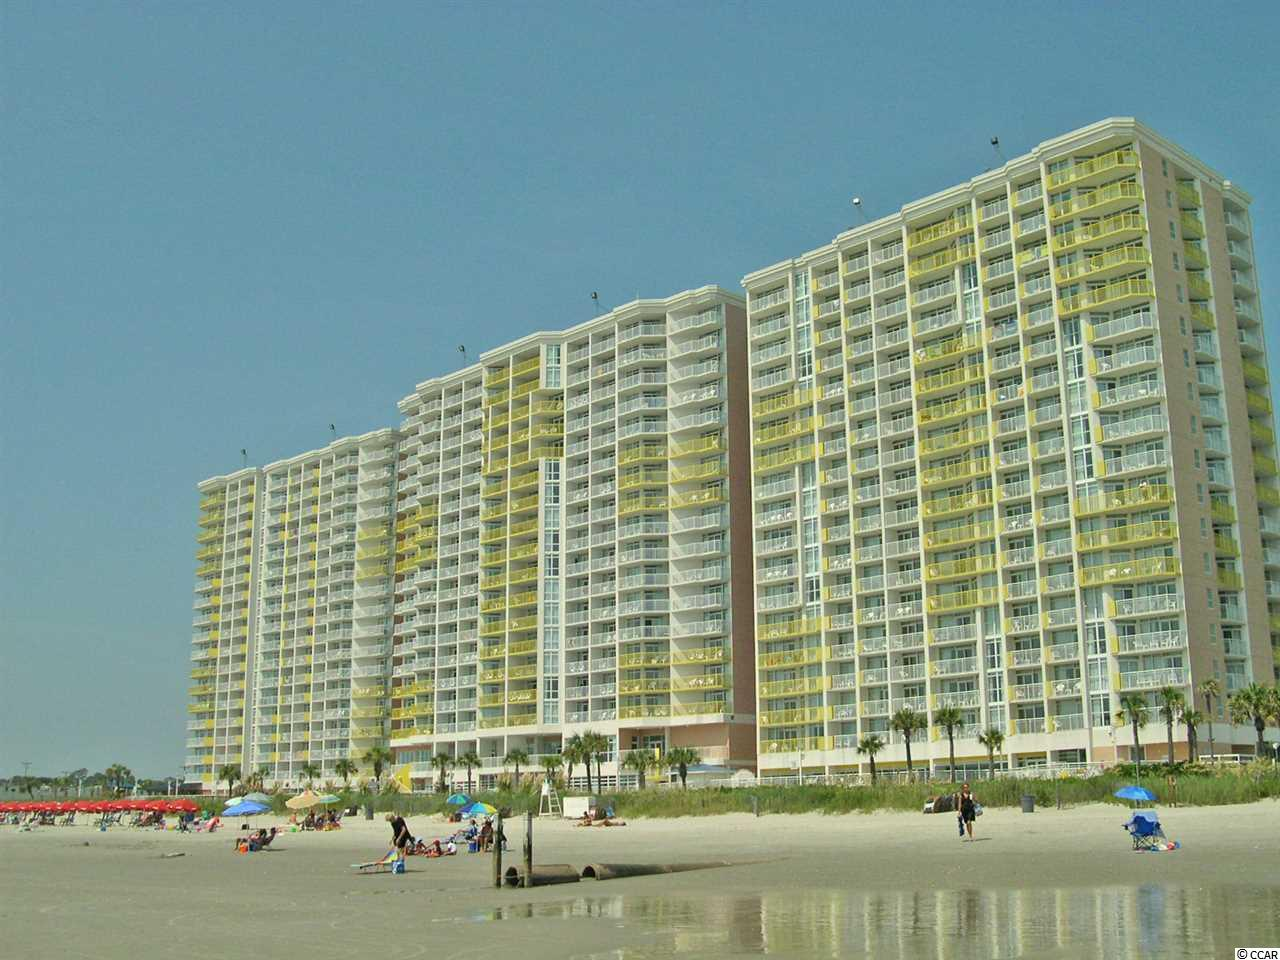 Beautiful oceanfront condo at the Baywatch Resort in North Myrtle Beach. Own your very own condo with many amenities. Lazy Rivers, indoor and outdoor pools, hot tubs, onsite restaurant/bar and oceanfront can be yours!